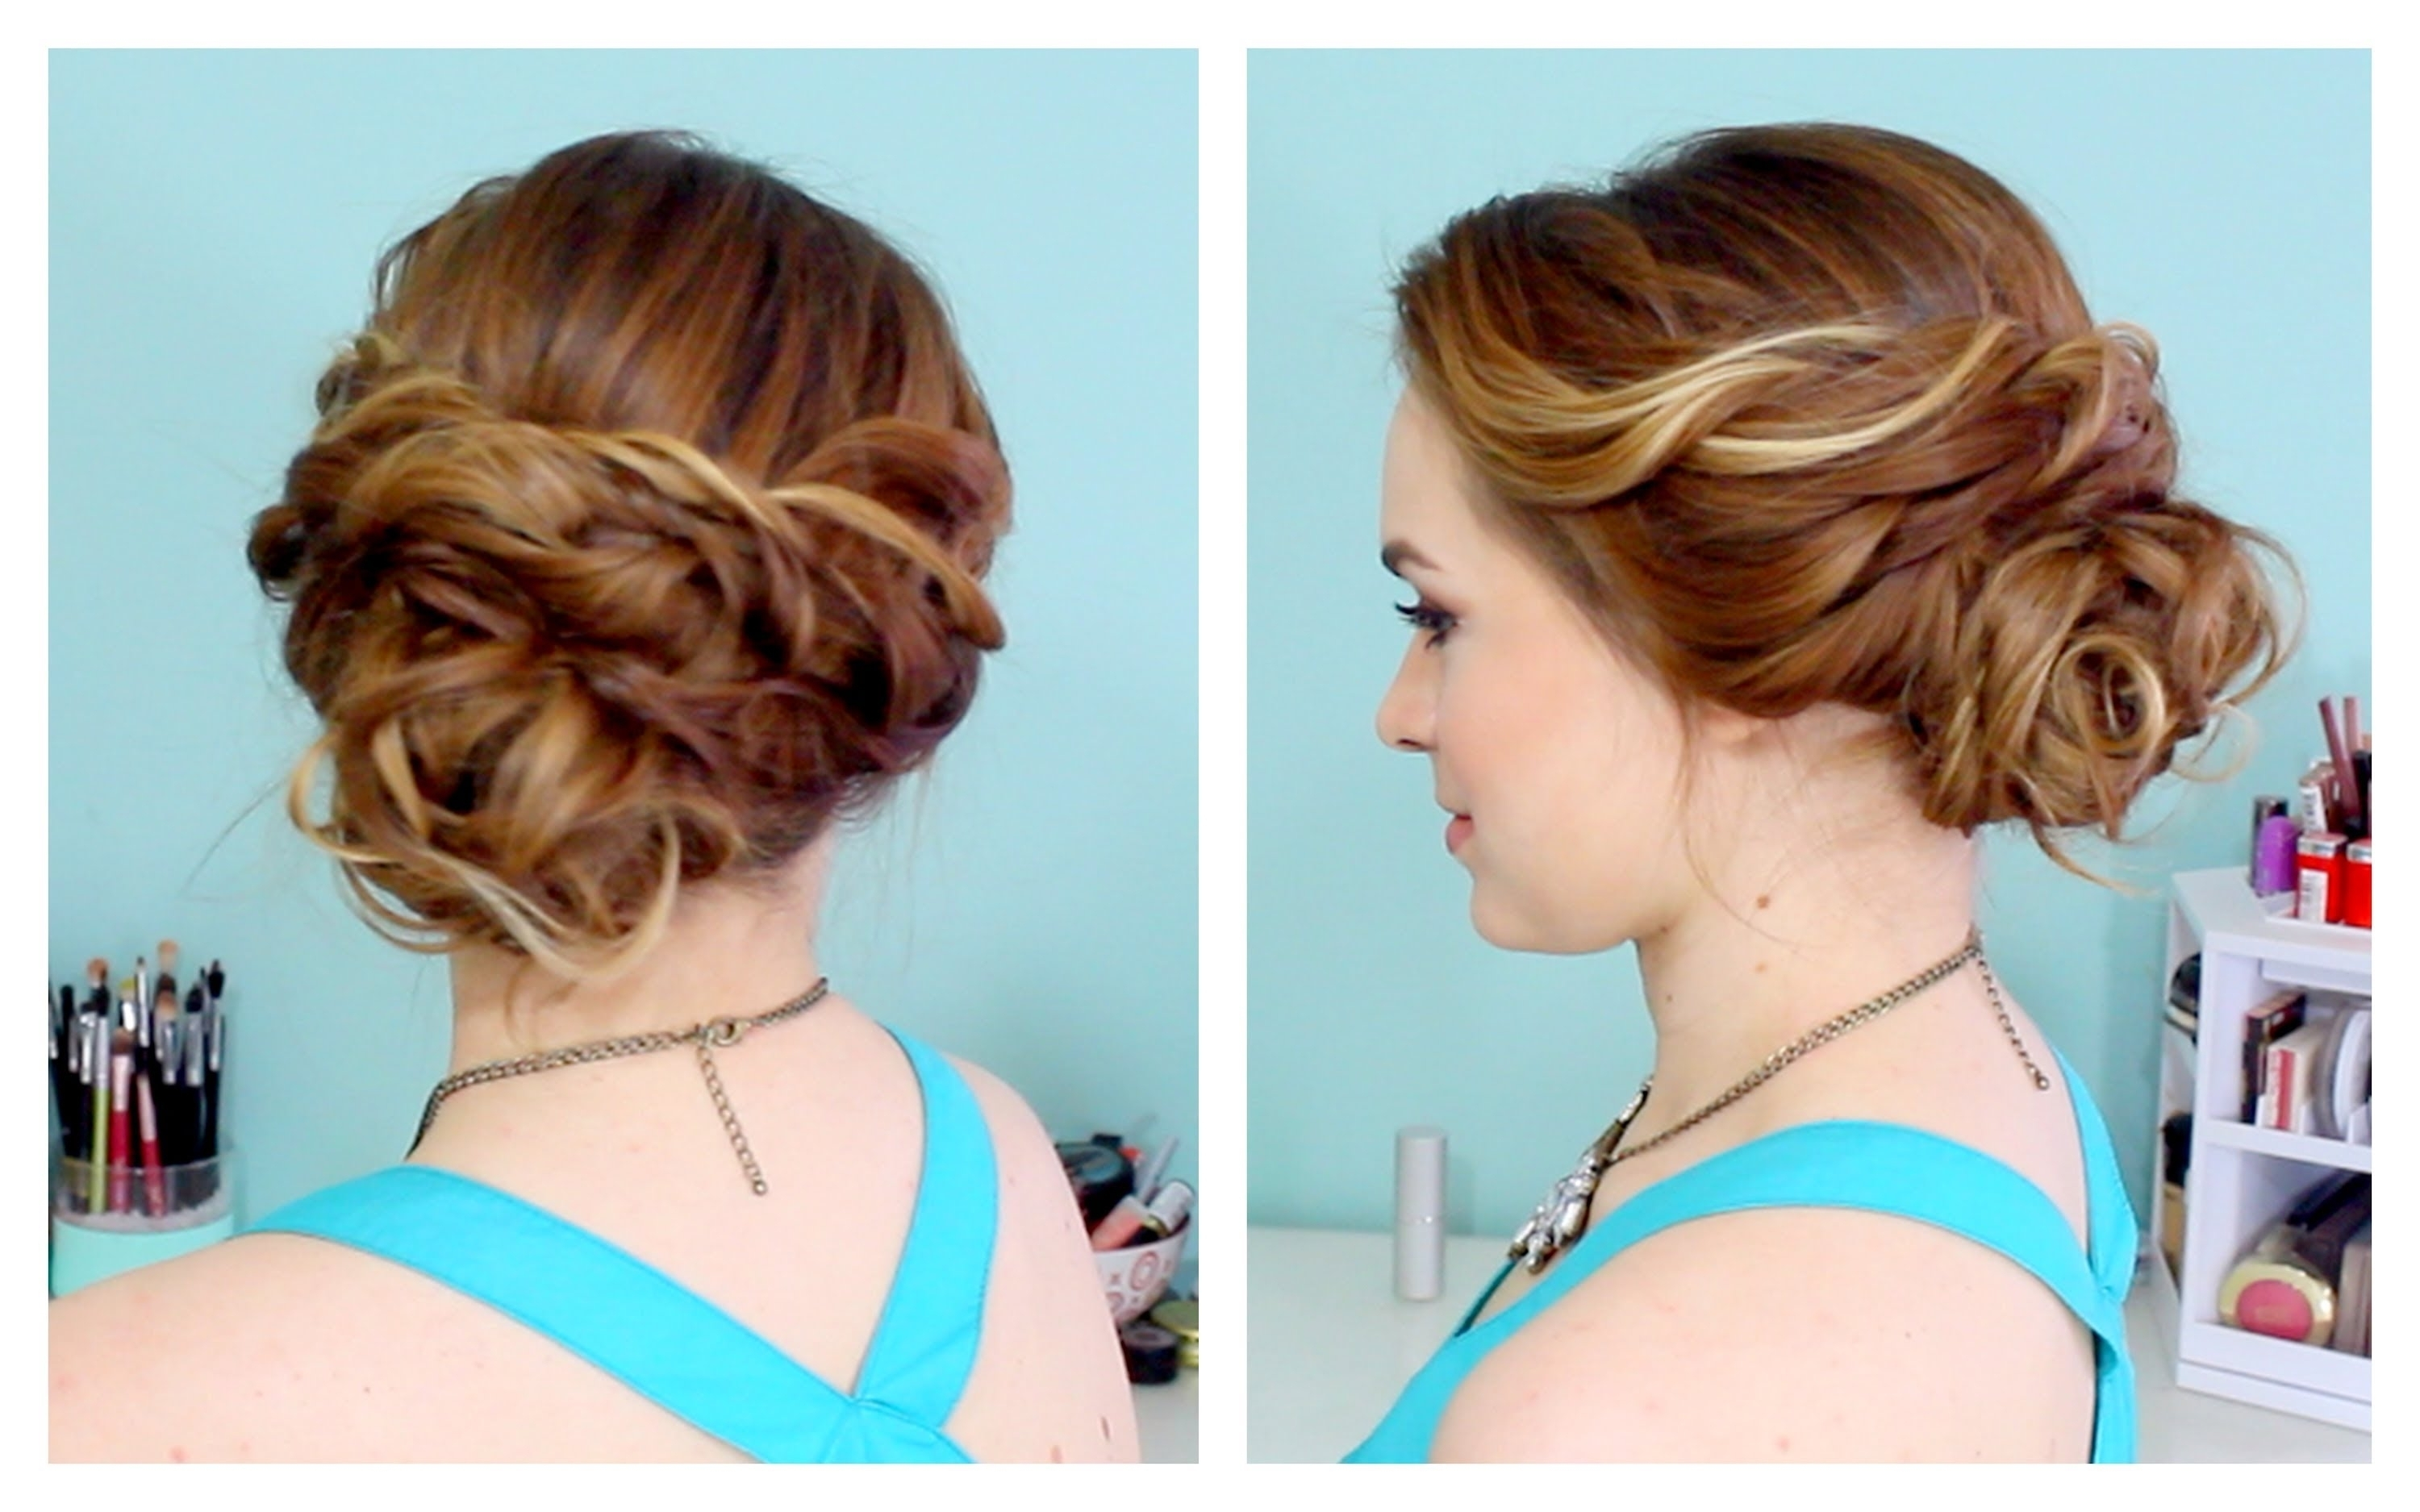 Casual Updo Hairstyles For Medium Length Hair Casual Updo Hairstyles For Shoulder Length Updo Hairstyles (View 12 of 15)